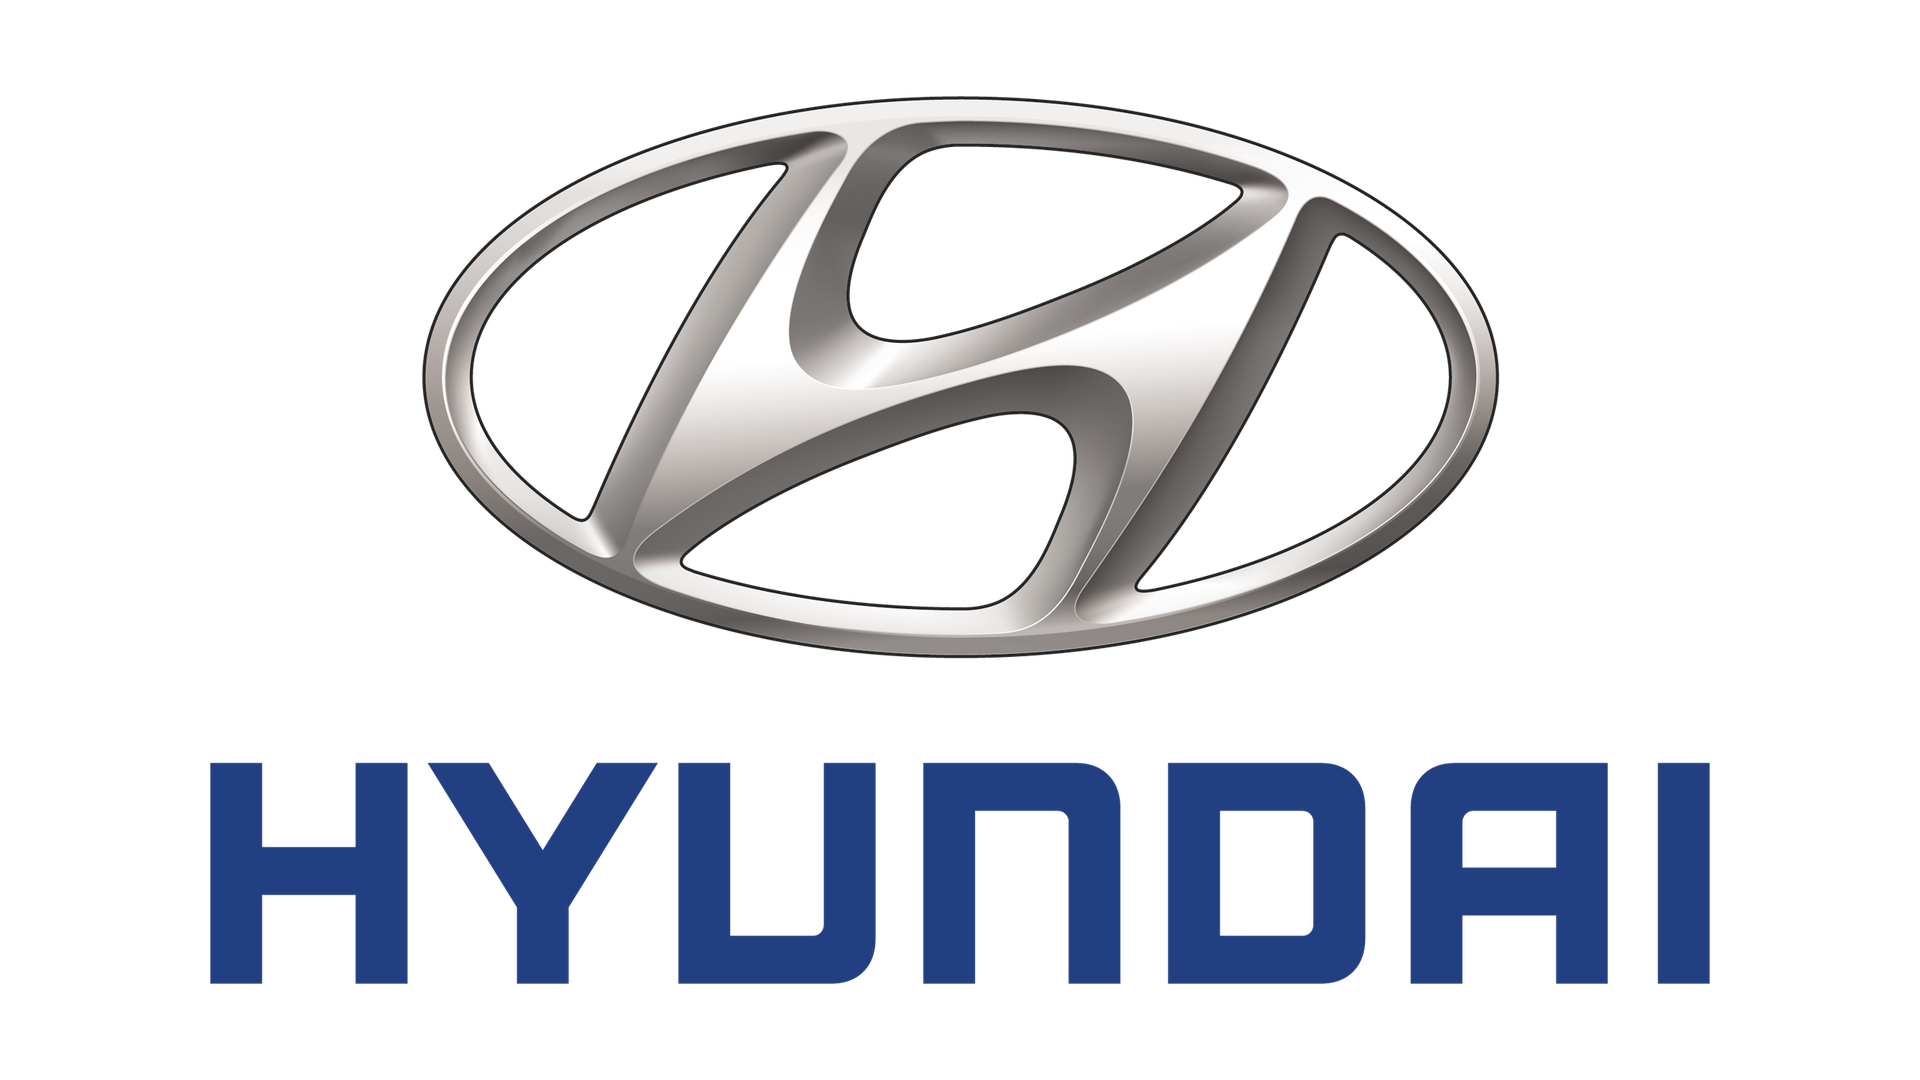 66 Hyundai Pdf Manuals Download For Free